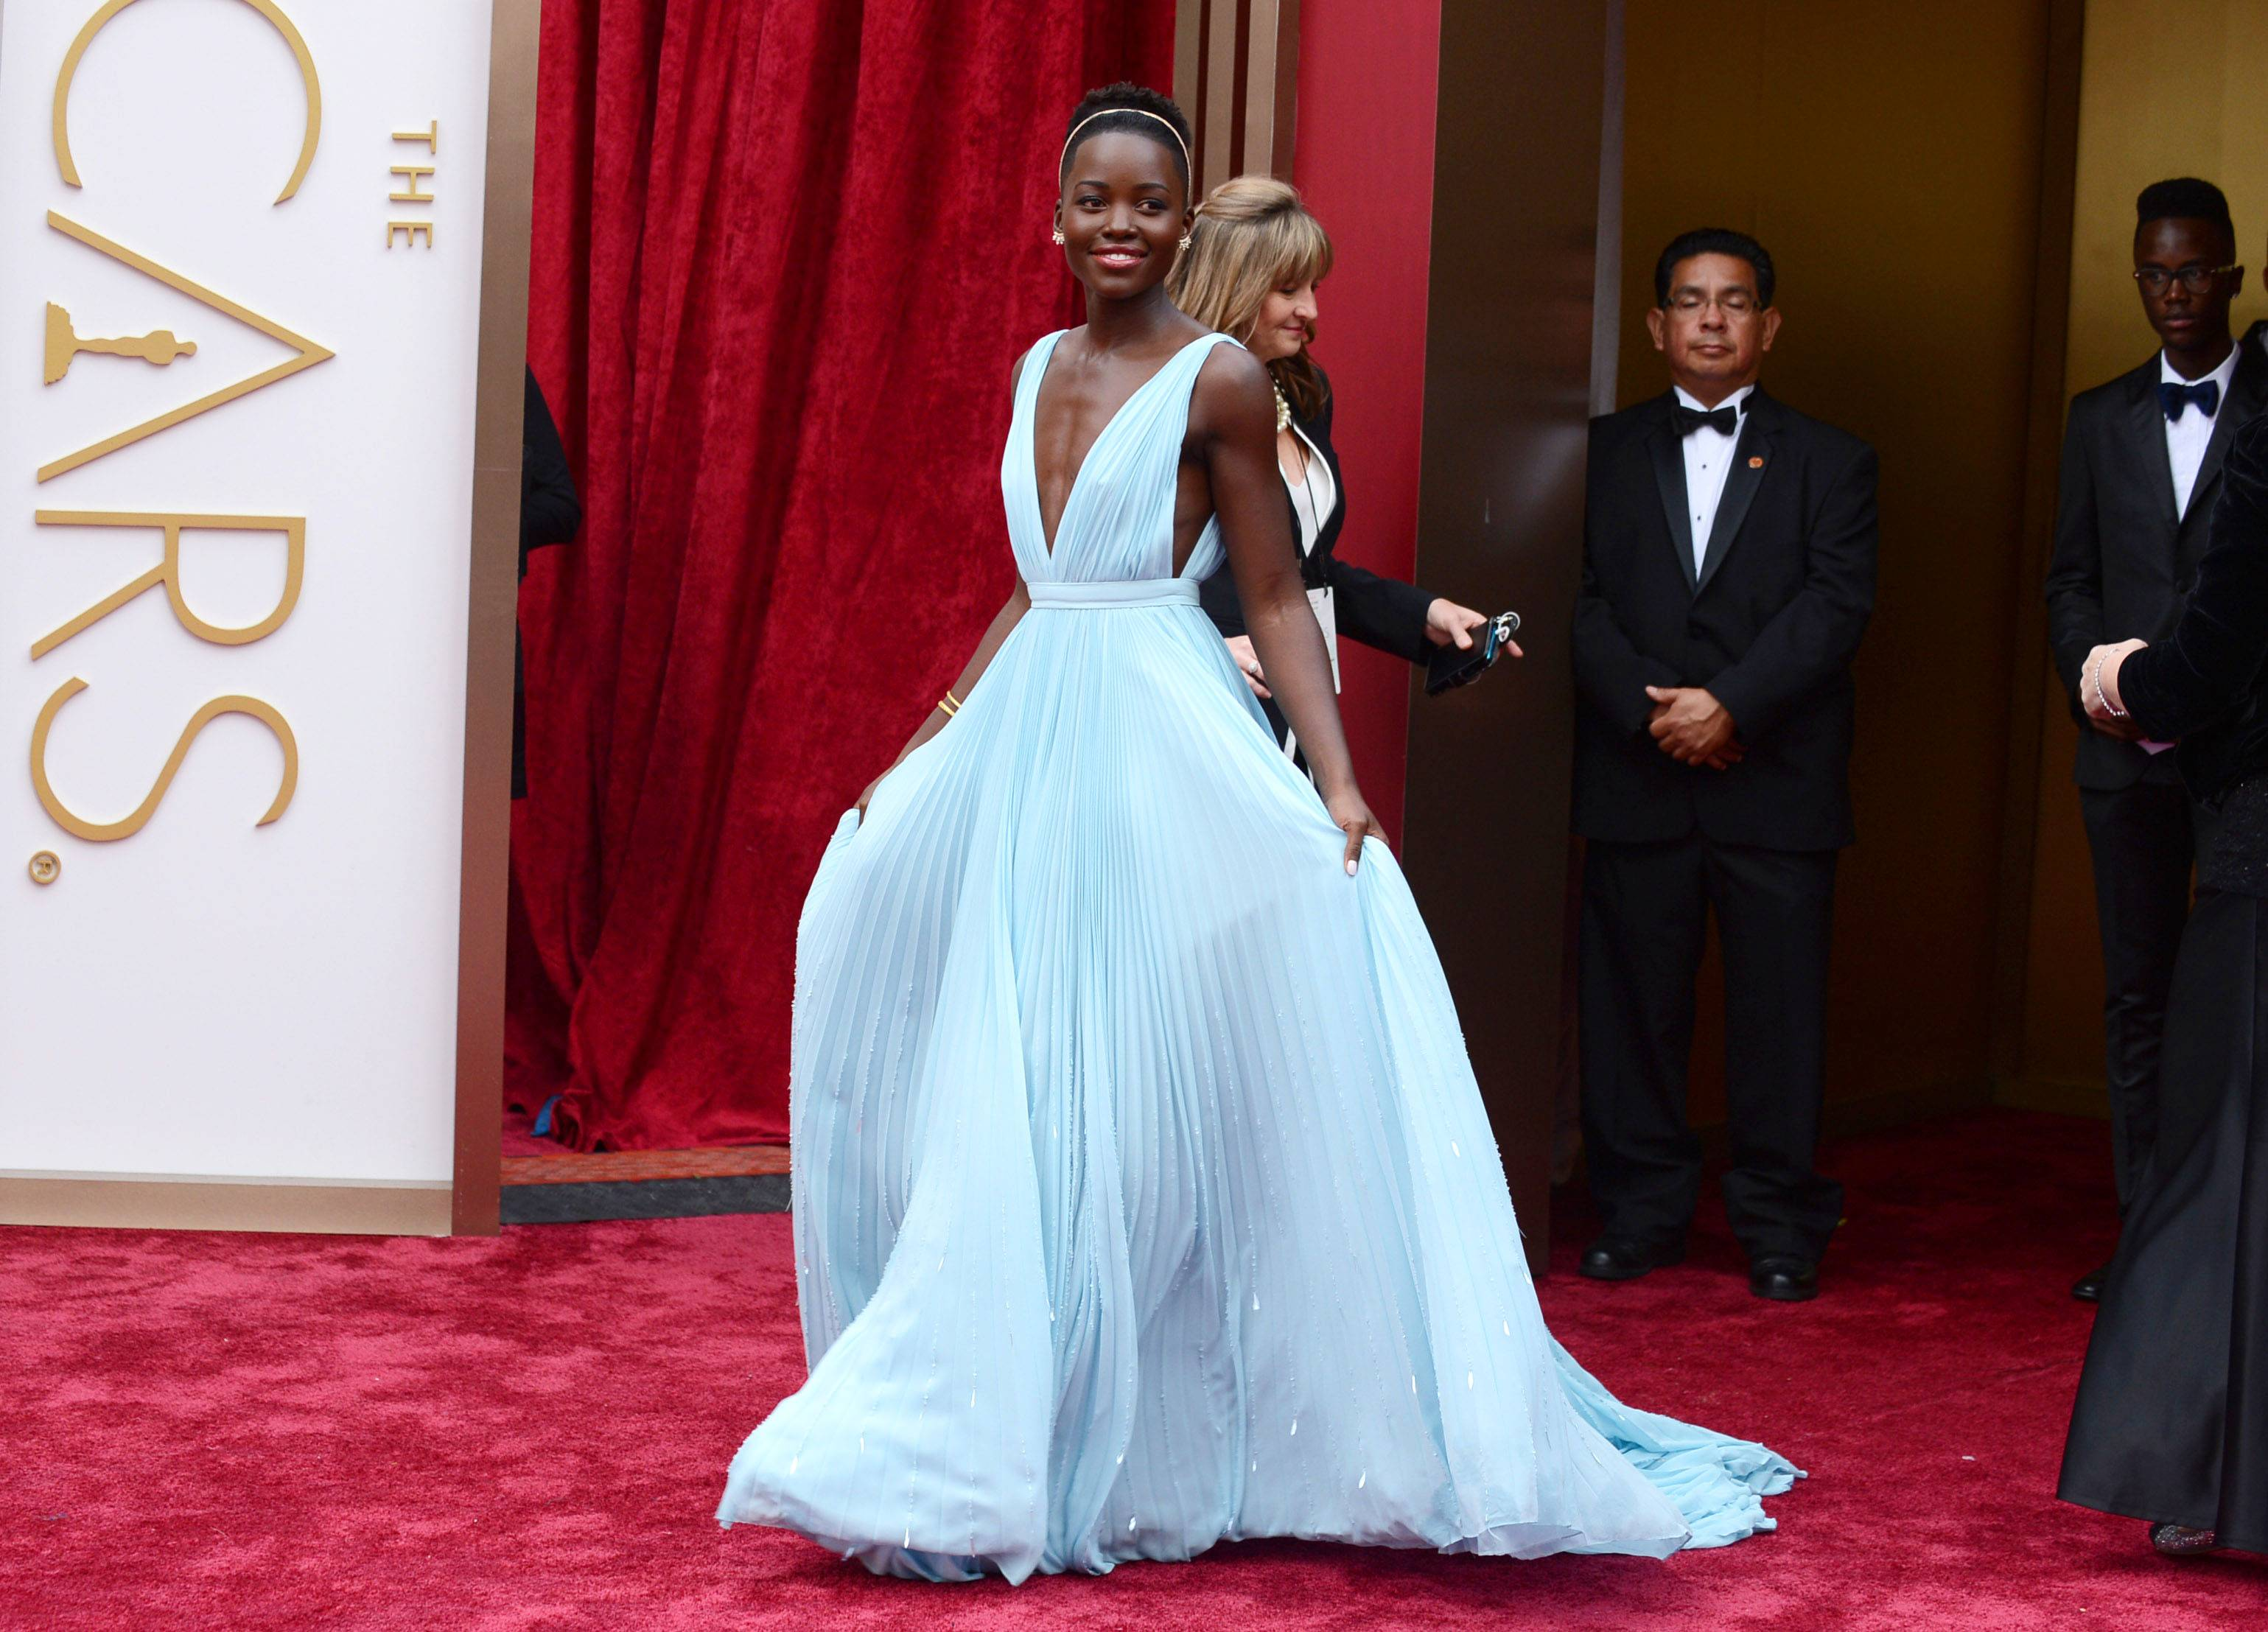 """12 Years a Slave"" and Oscar nominee Lupita Nyong'o looks every bit the belle of the ball in this pastel gown. Nyong'o hasn't made a fashion misstep yet this award season."